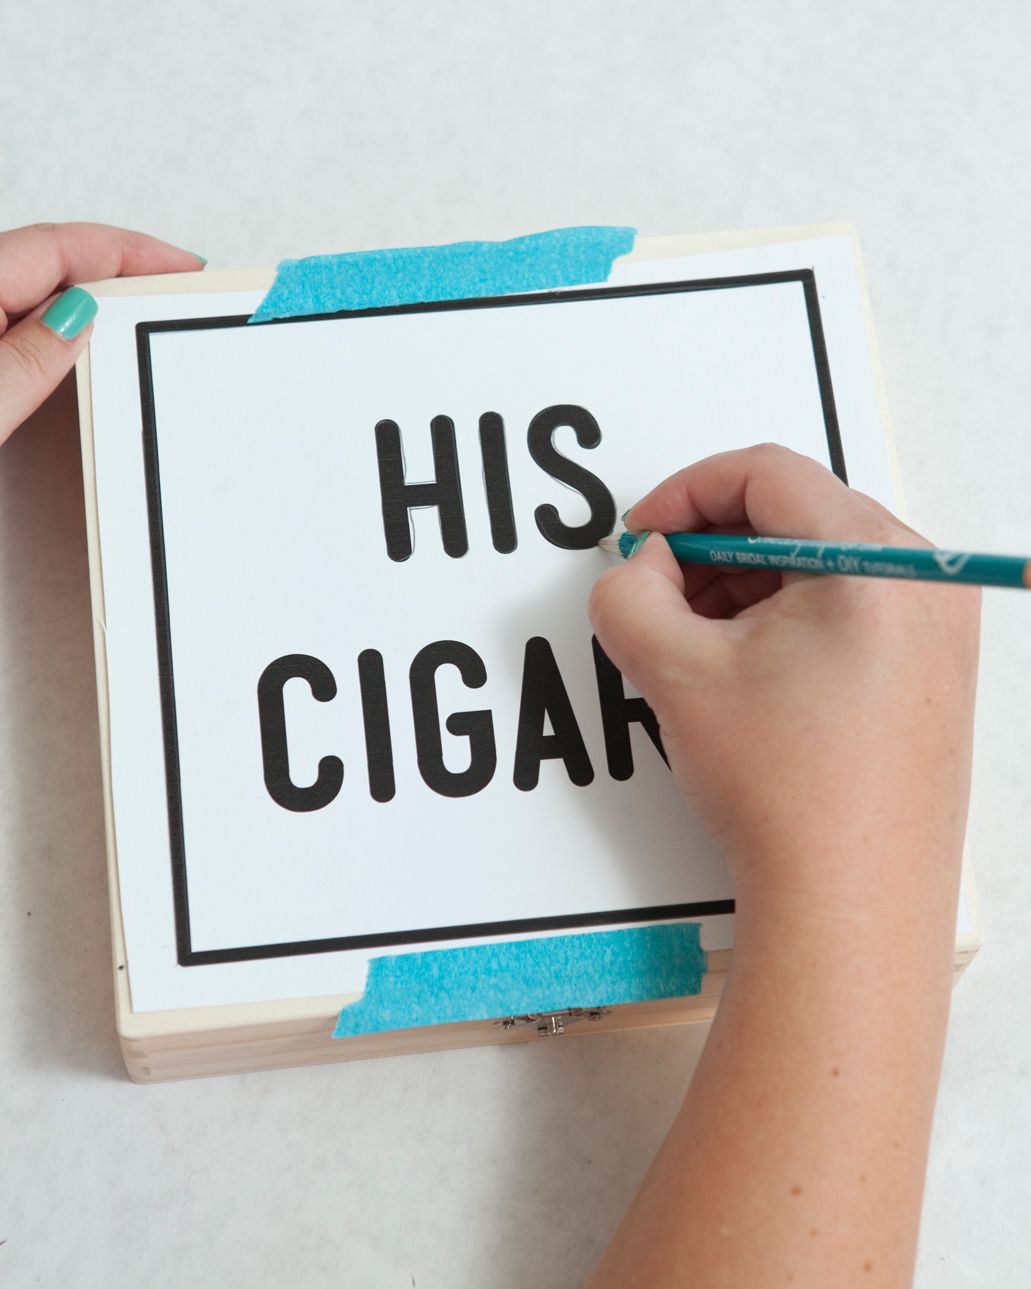 his-cigar-box-something-turquoise-outlining-letters-0515.jpg